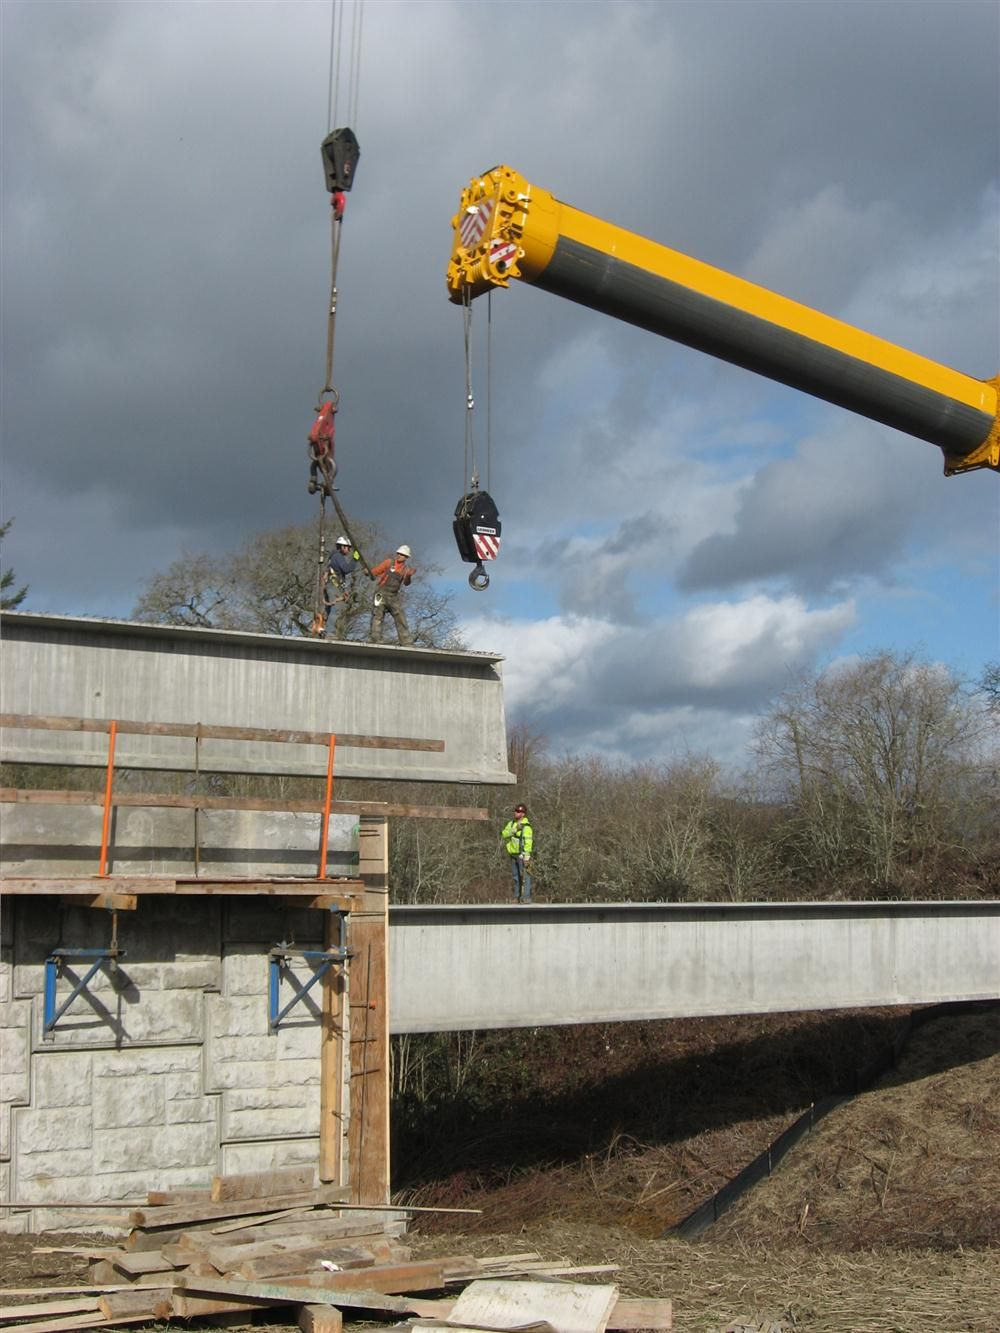 Contractors have already built one bridge, using large cranes to put the bridge beams in place.